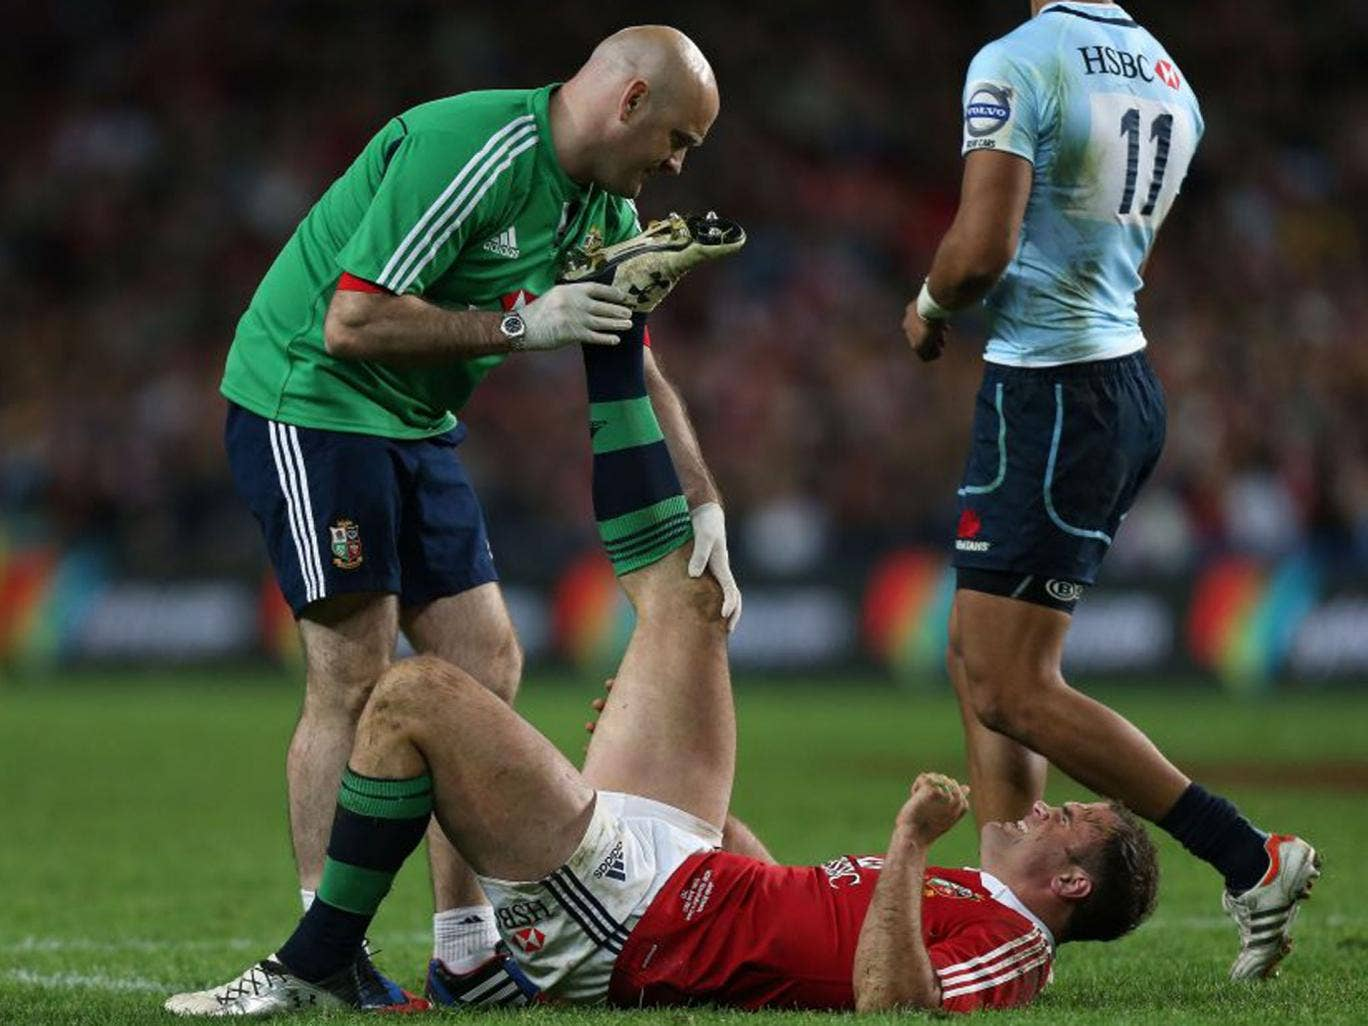 The Lions' Jamie Roberts looked in pain as he received treatment for an injury that could rule him out of the next match (David Davies/PA)